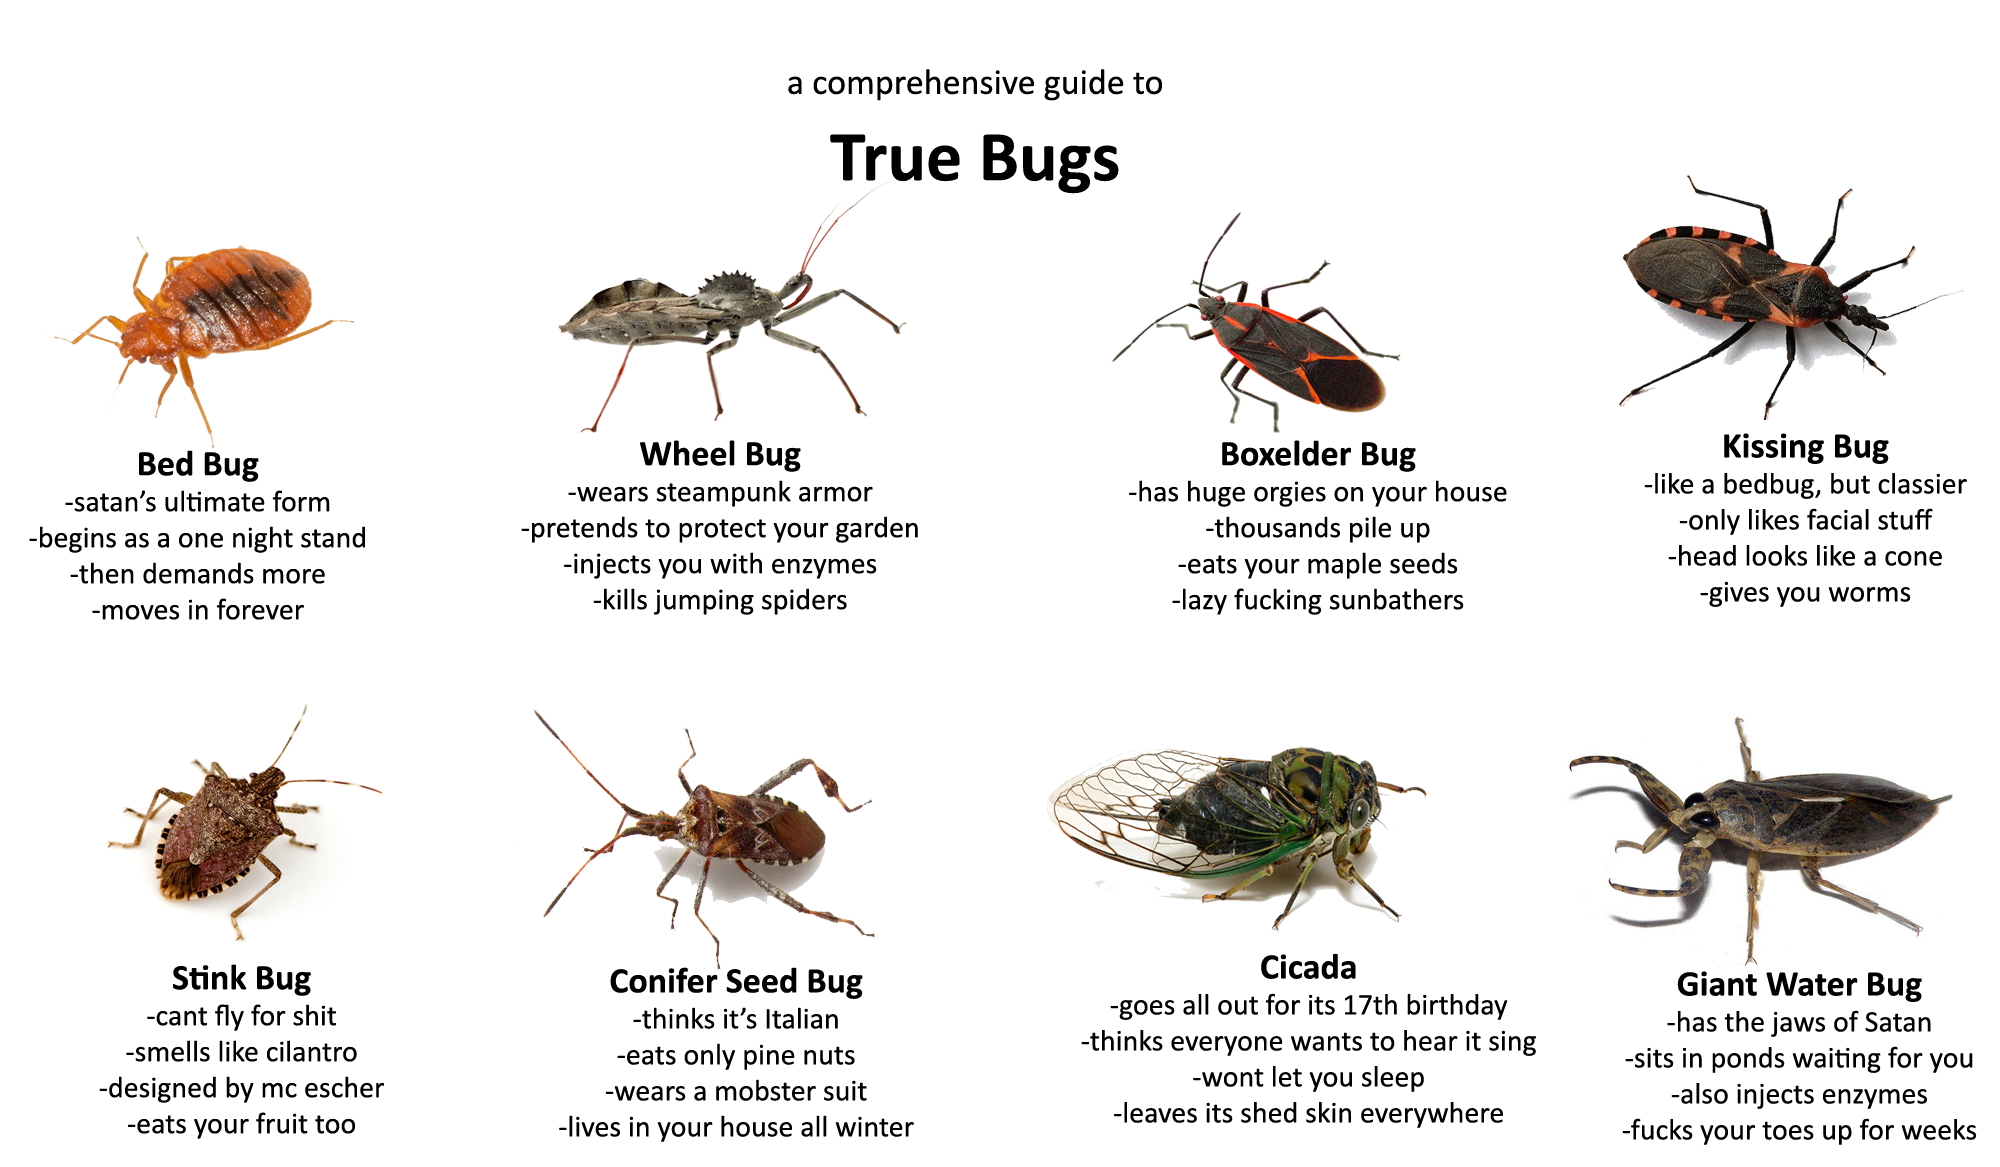 Know your Bugs Steampunk armor, One night stands, Rhetoric